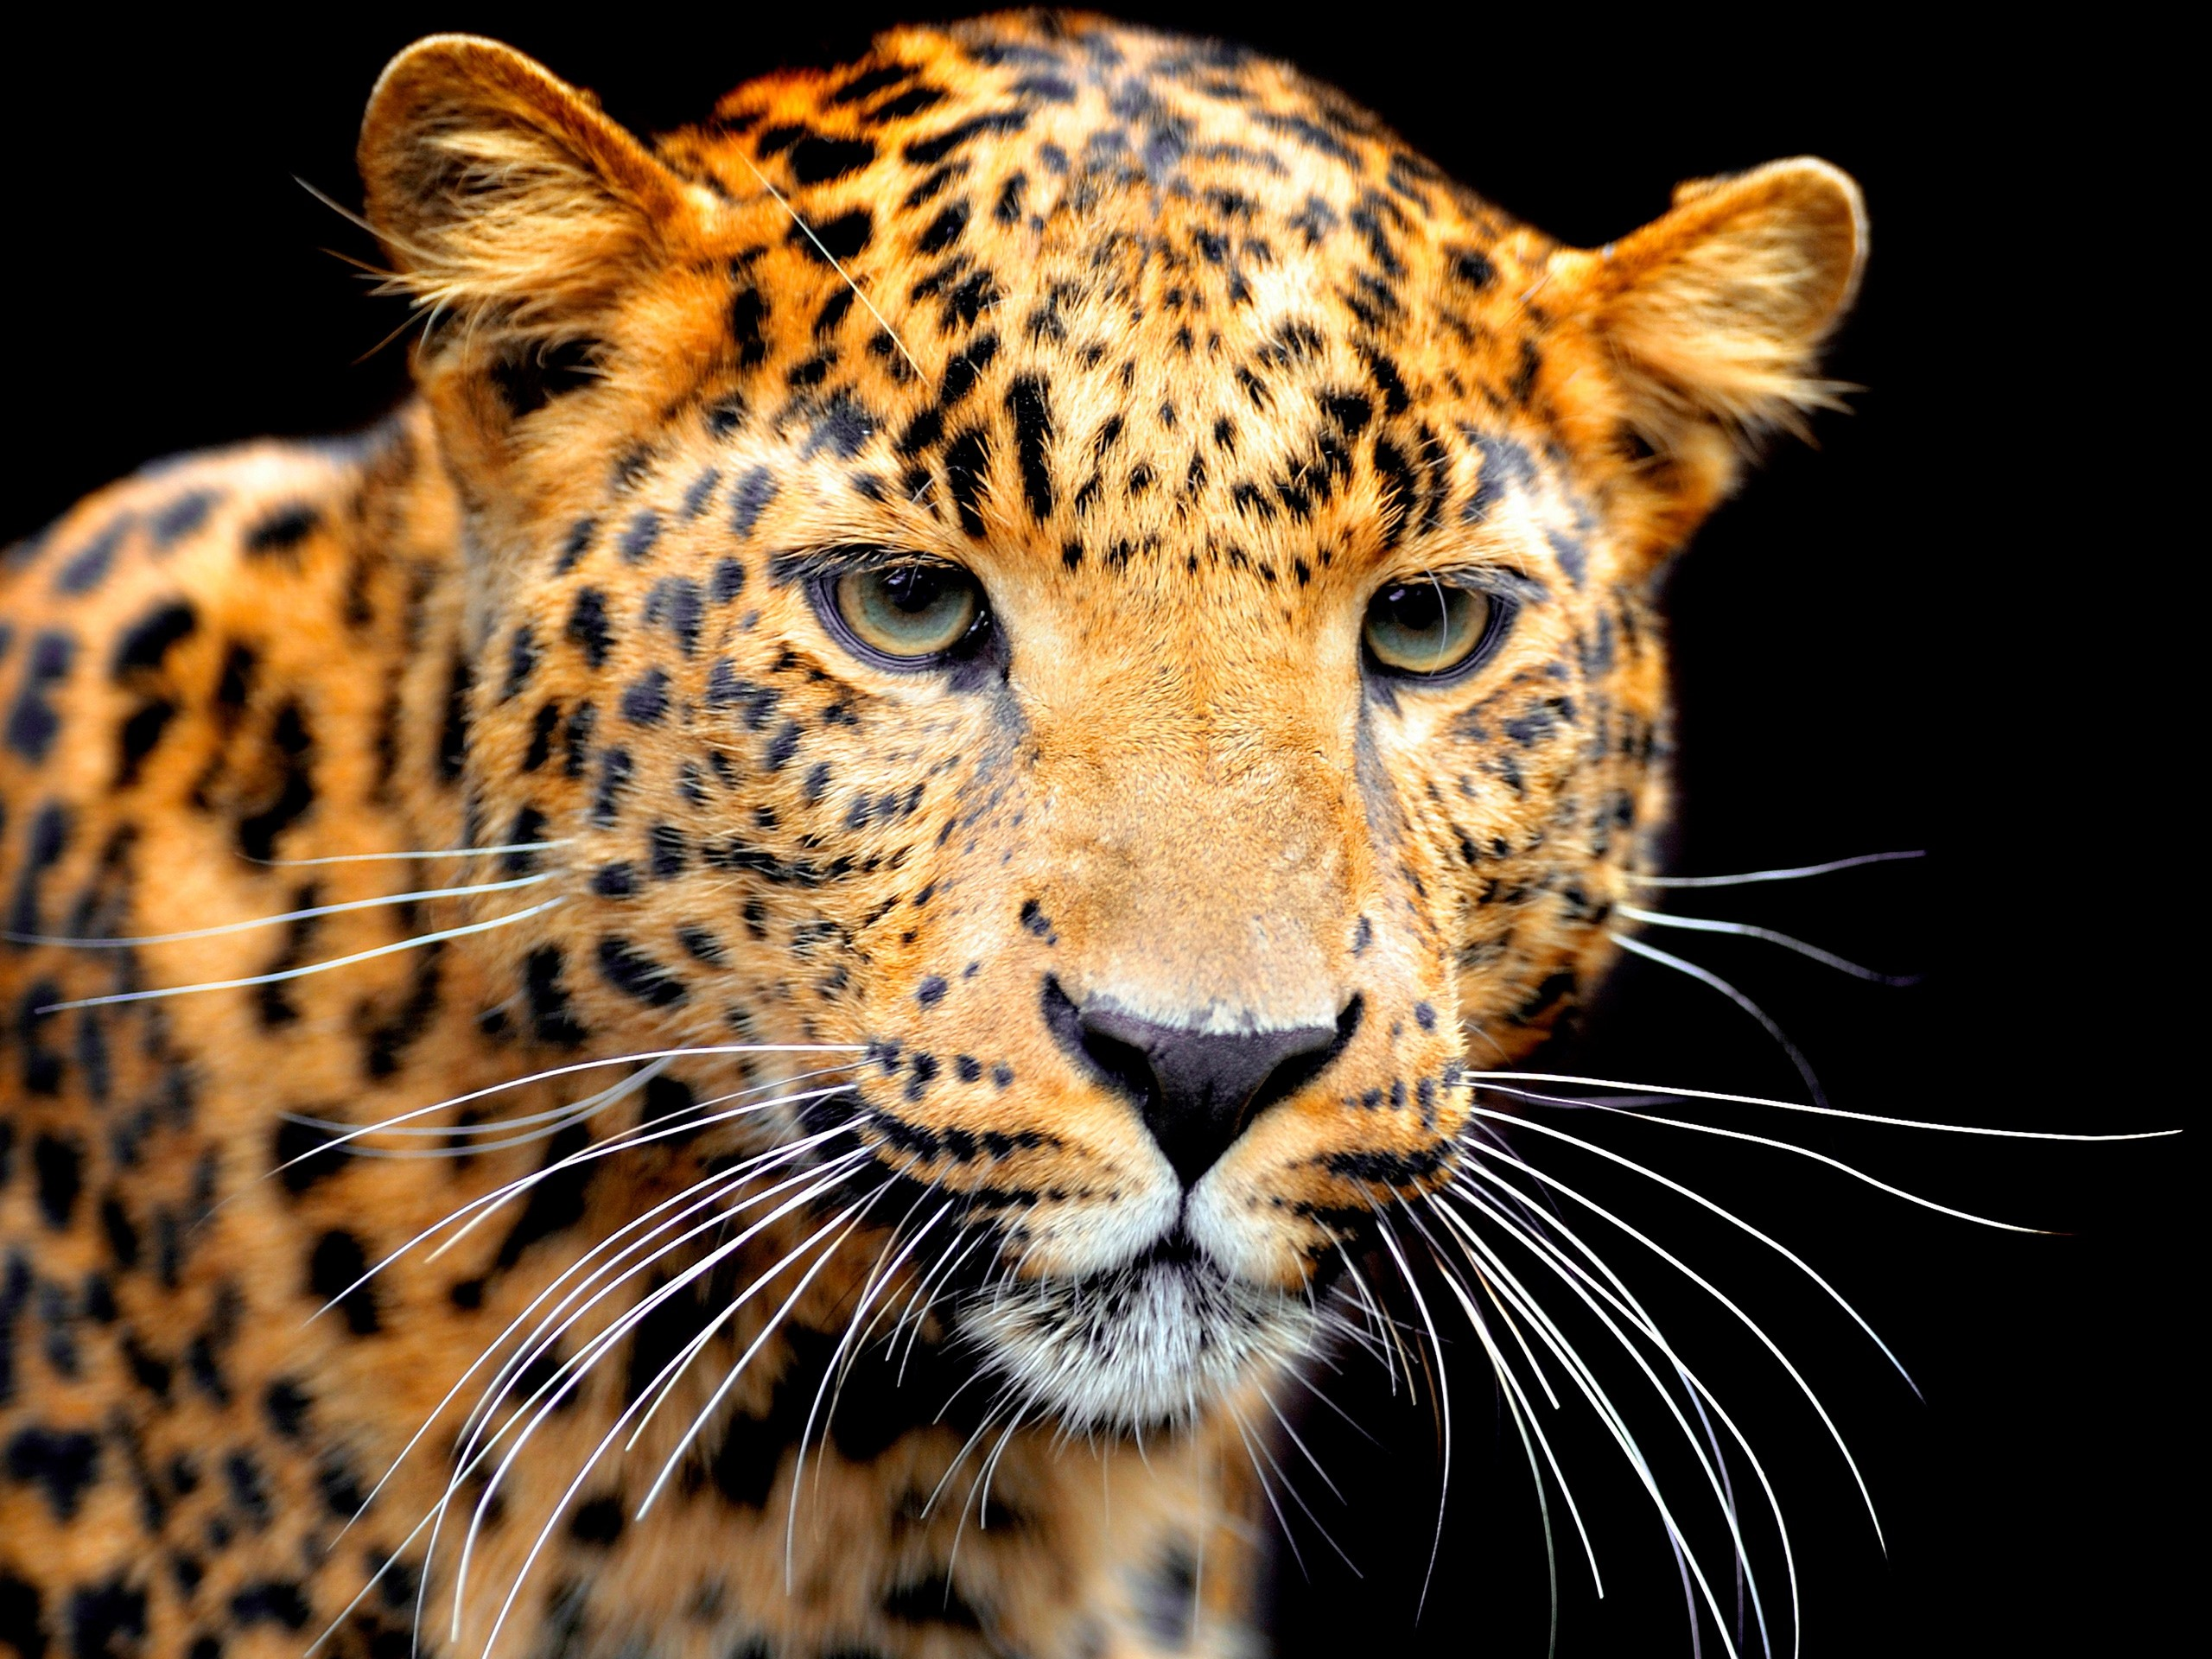 Wallpaper Jaguar Face Black Background 2560x1920 Hd Picture Image